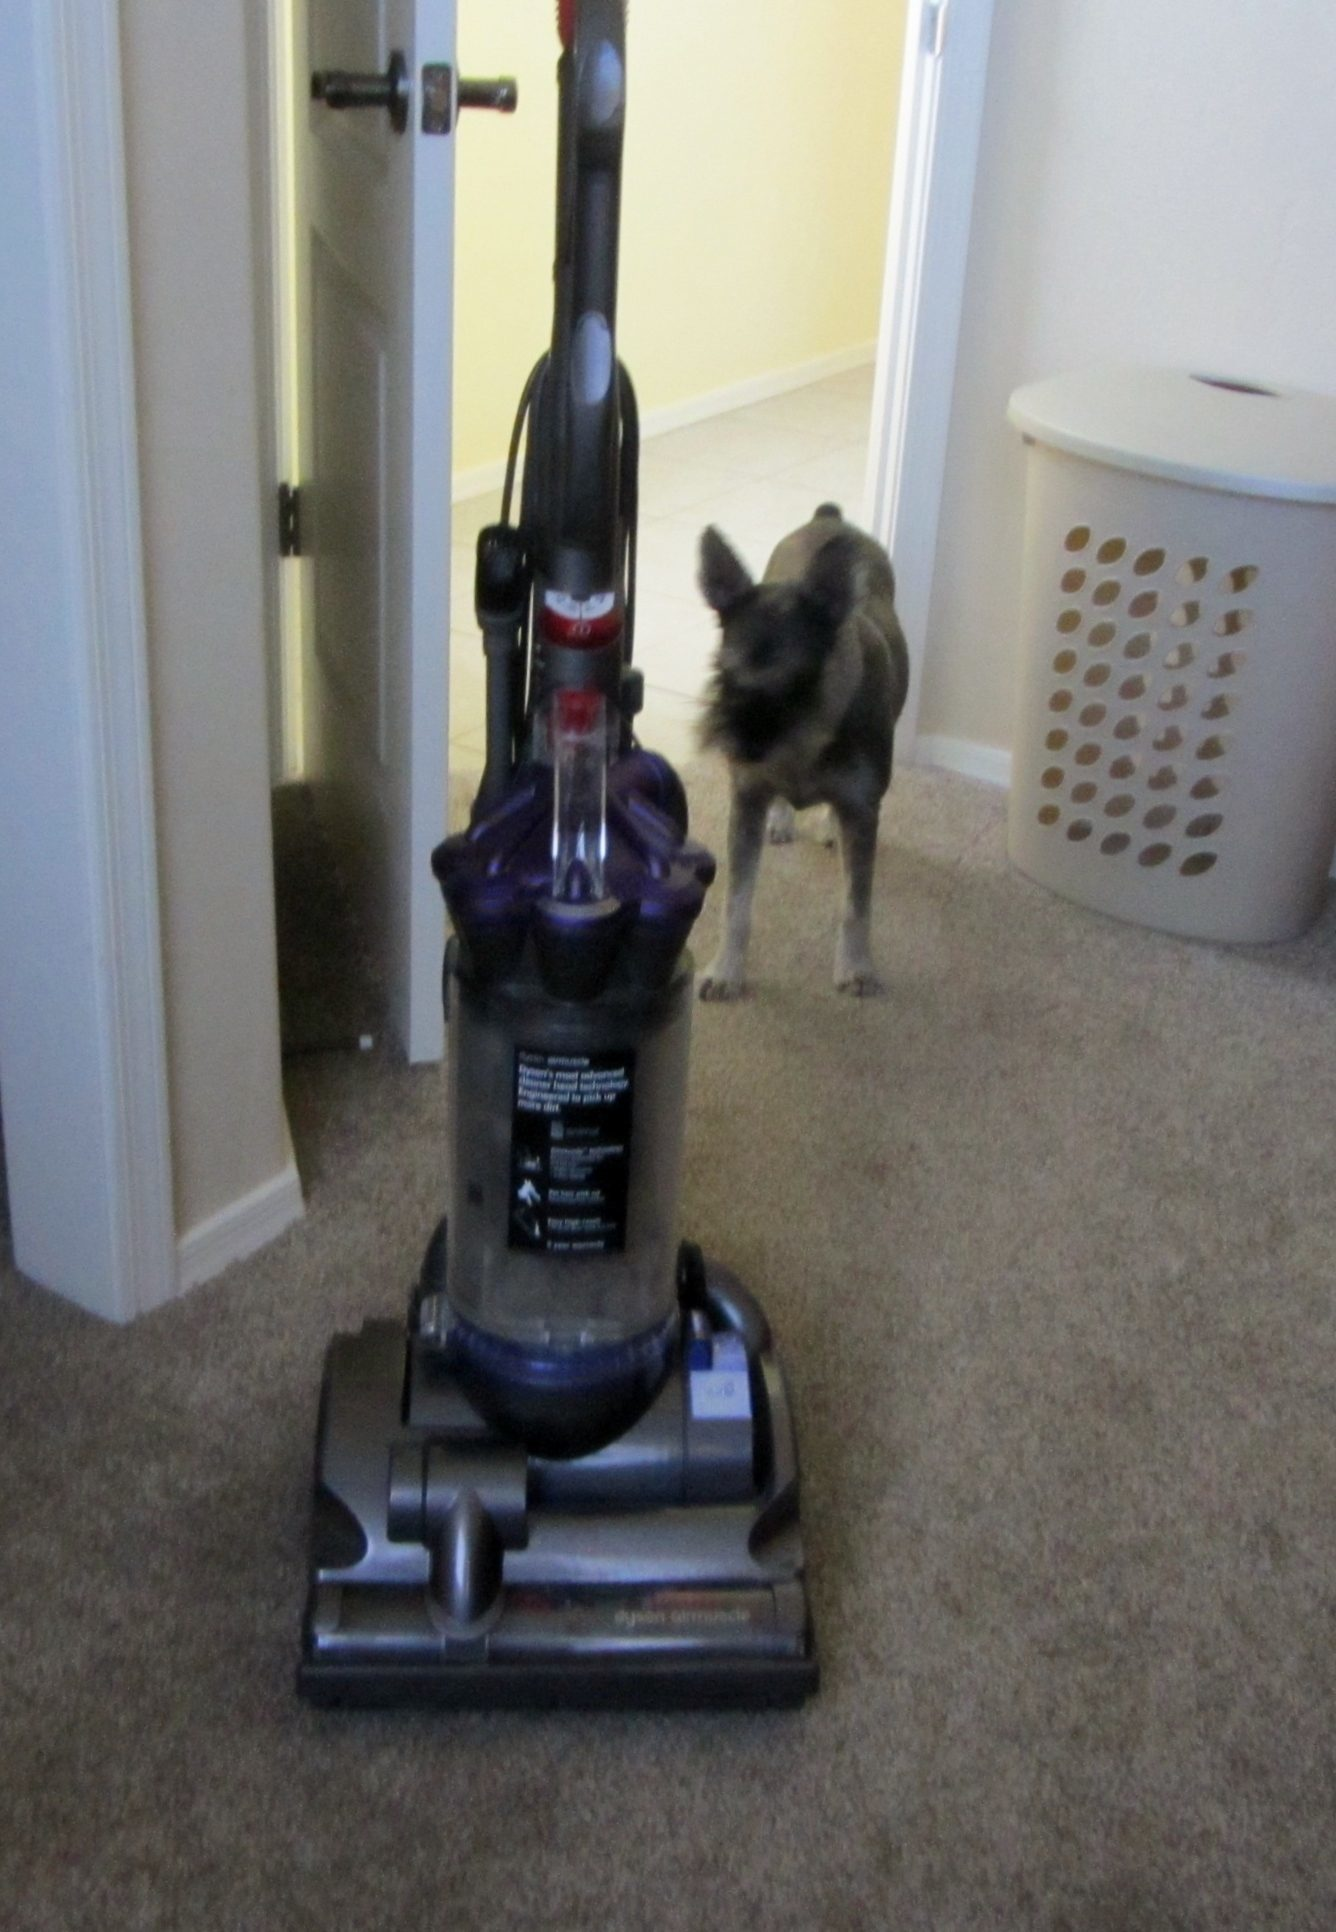 dyson vacuums images i purchased the dc28 and bought it due to great reviews from family - Dyson Reviews